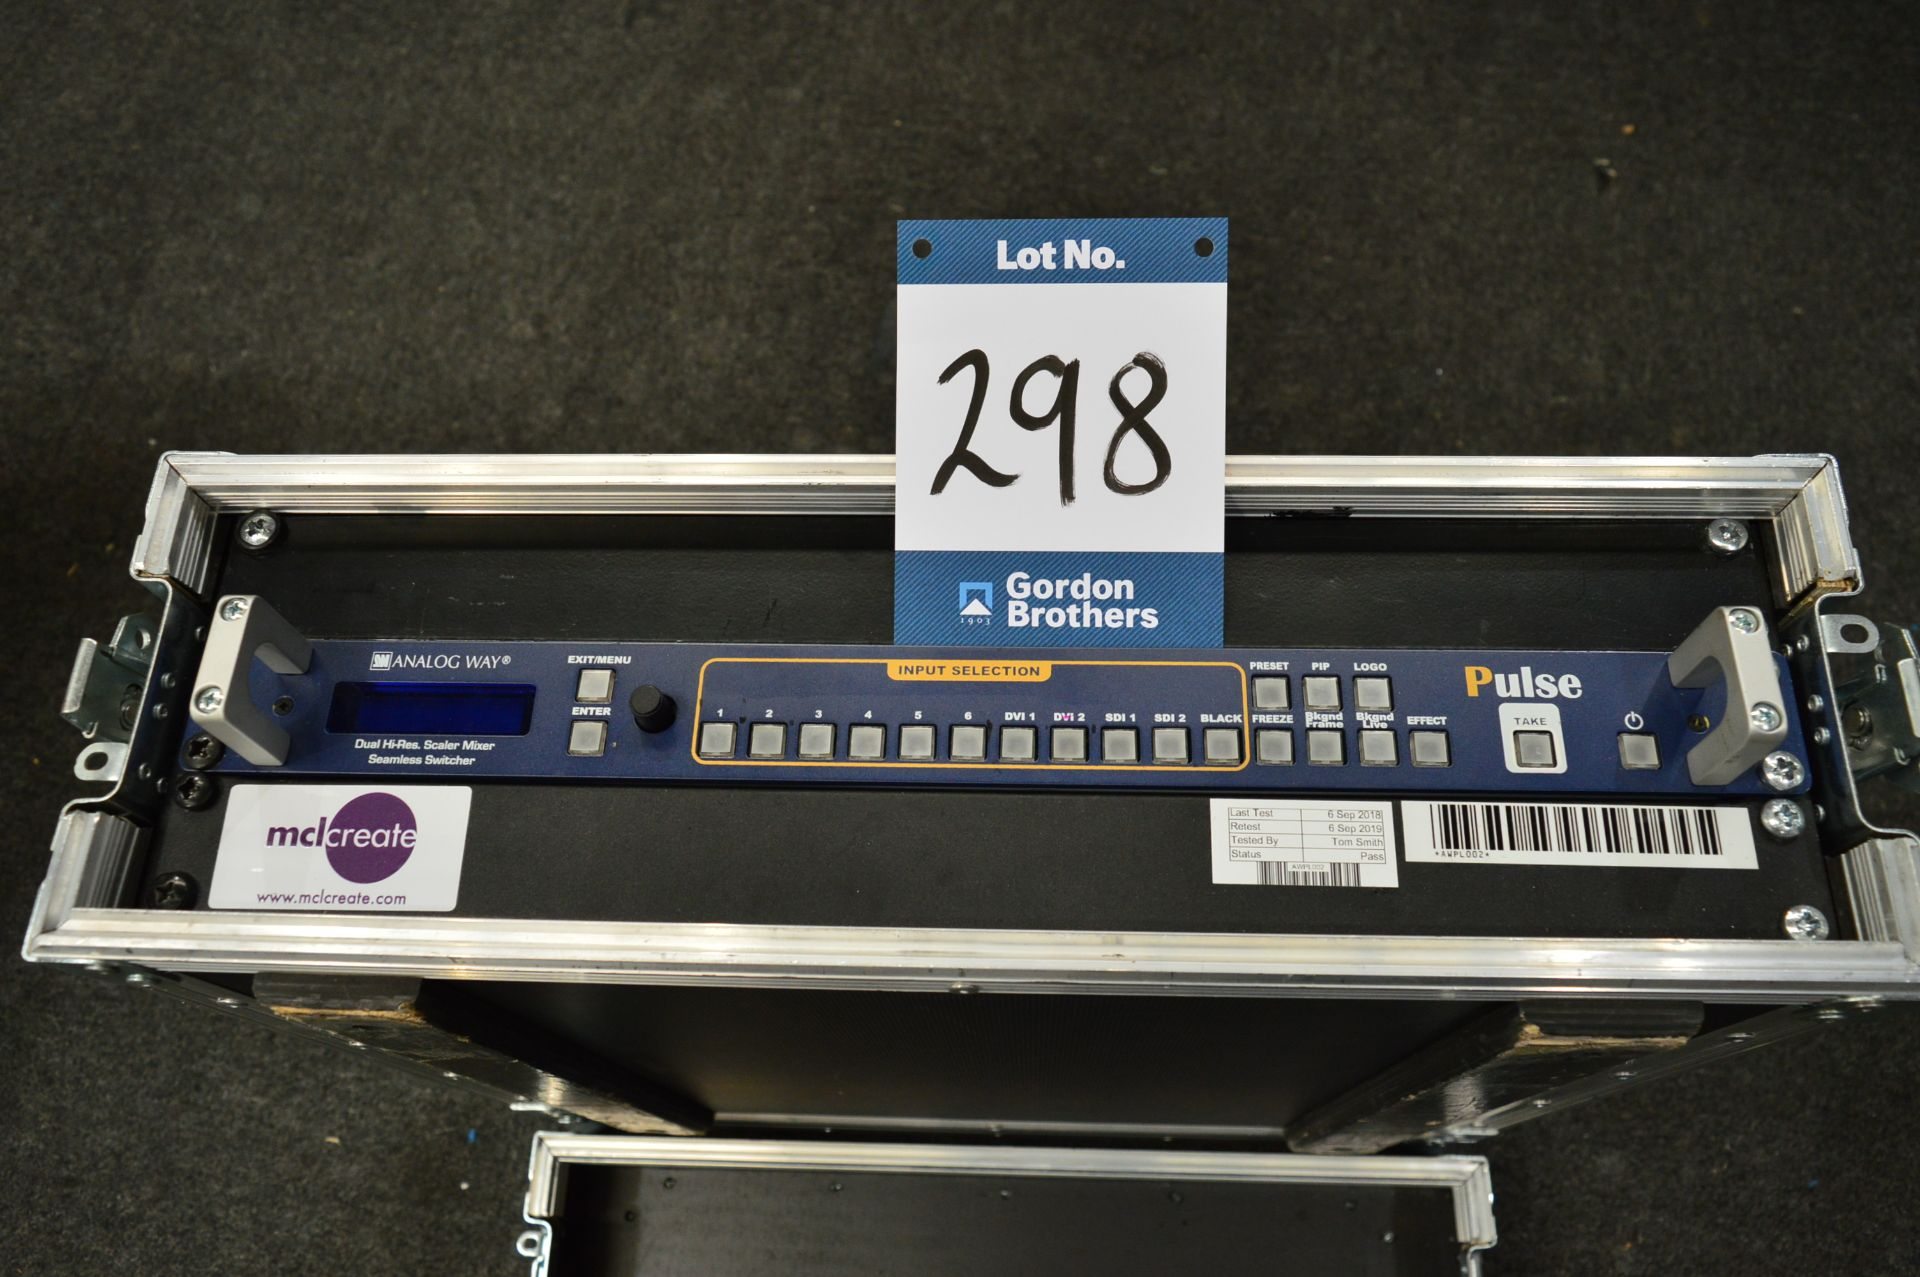 Lot 298 - Analog Way, PLS300 R/M dual high resolution scaler